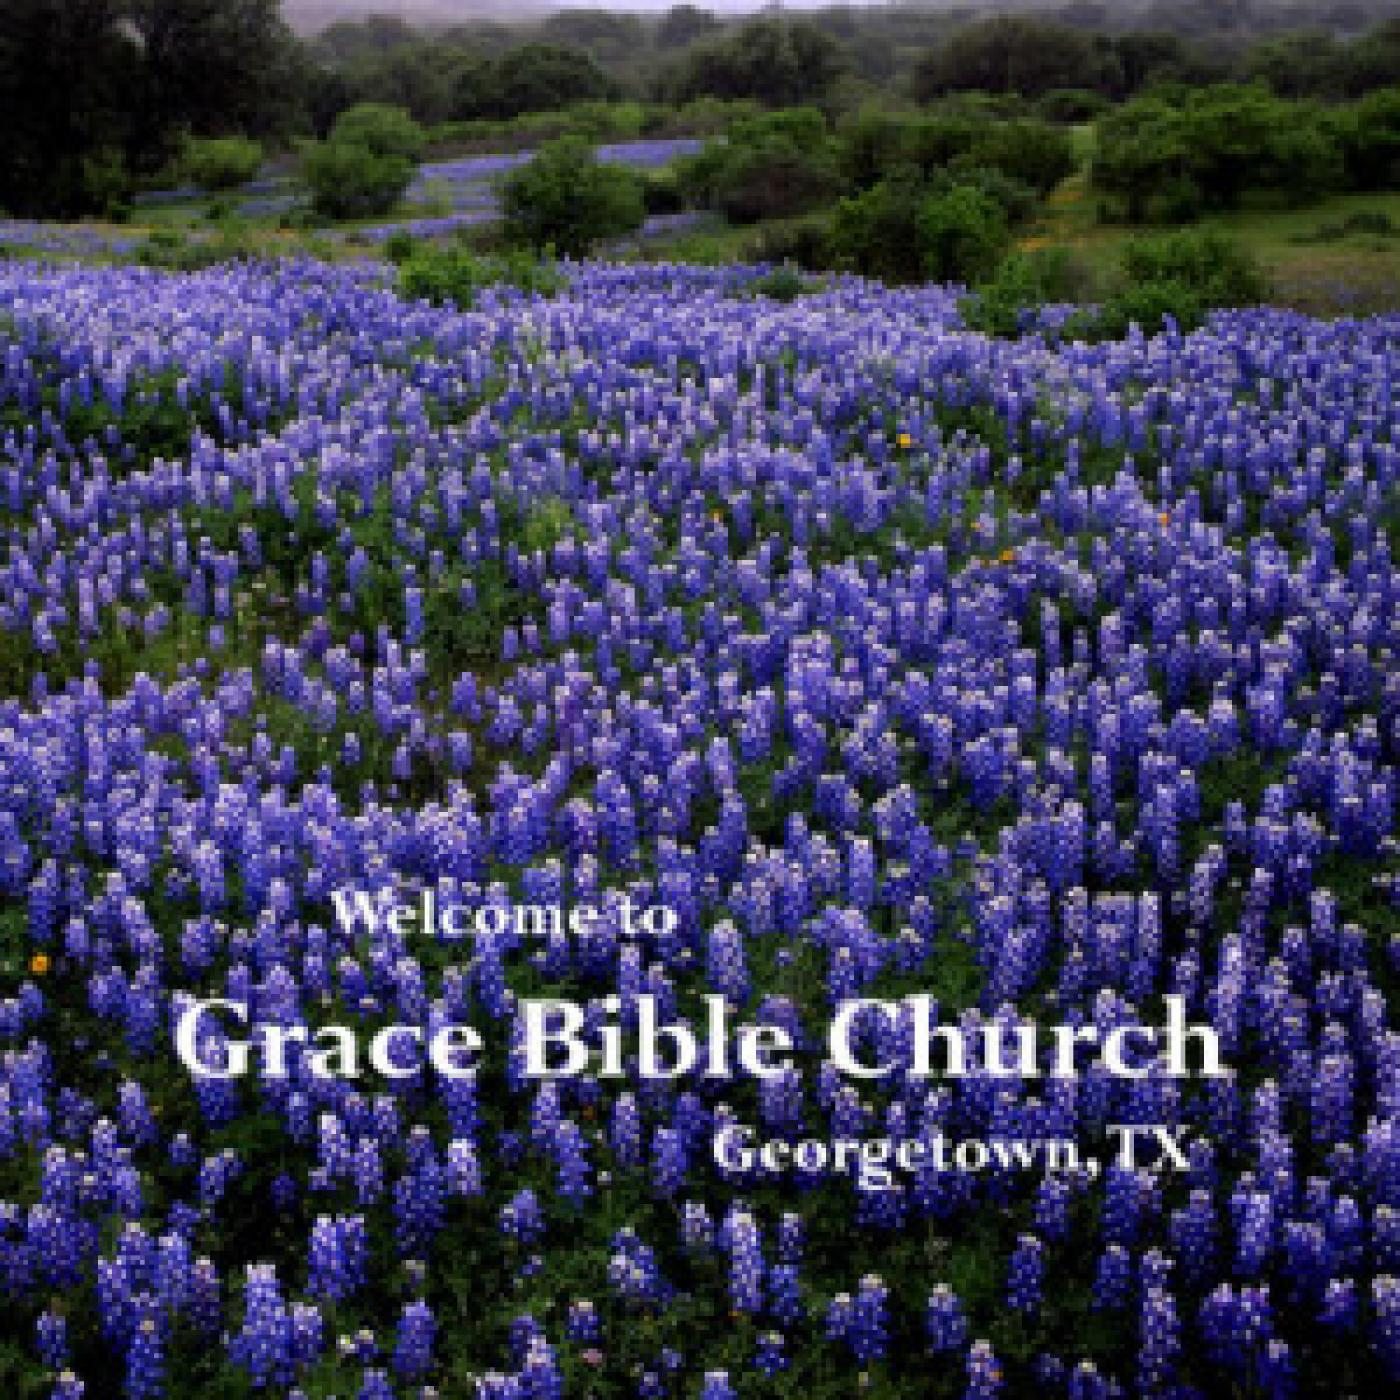 Grace Bible Church Georgetown, TX